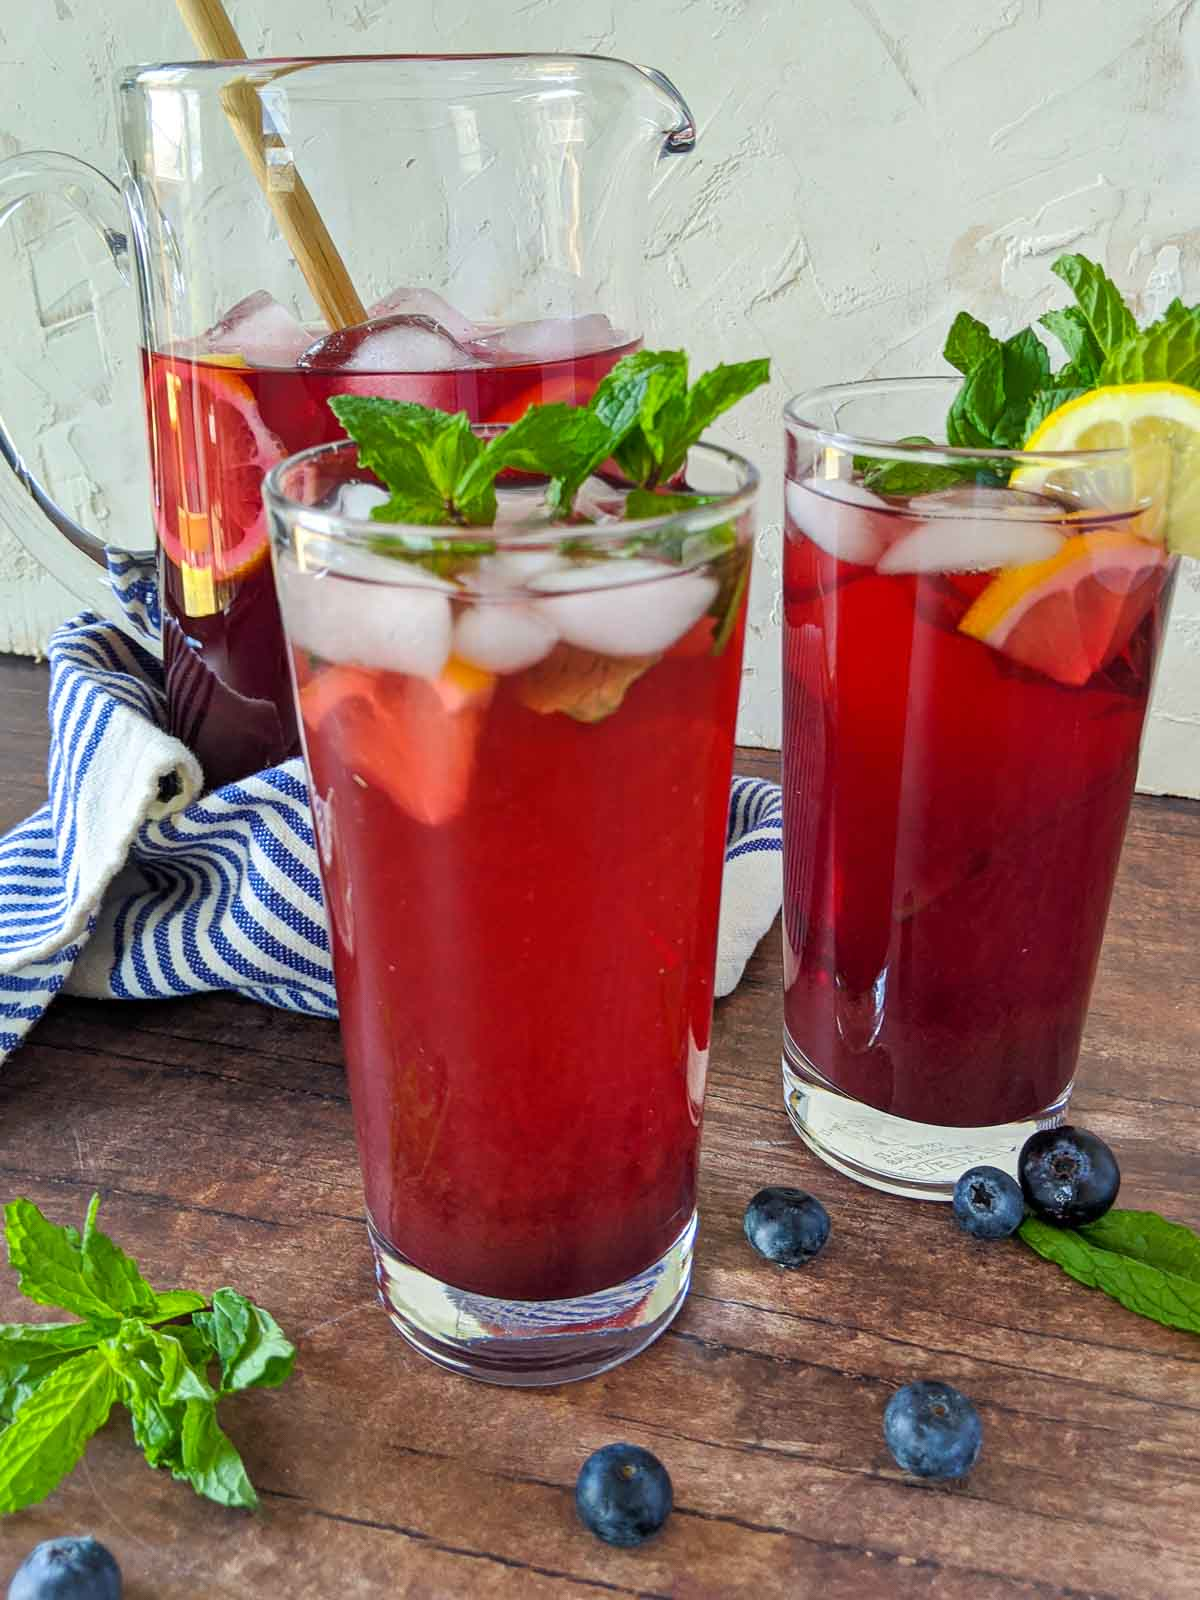 blueberry tea in glasses with lemon and mint